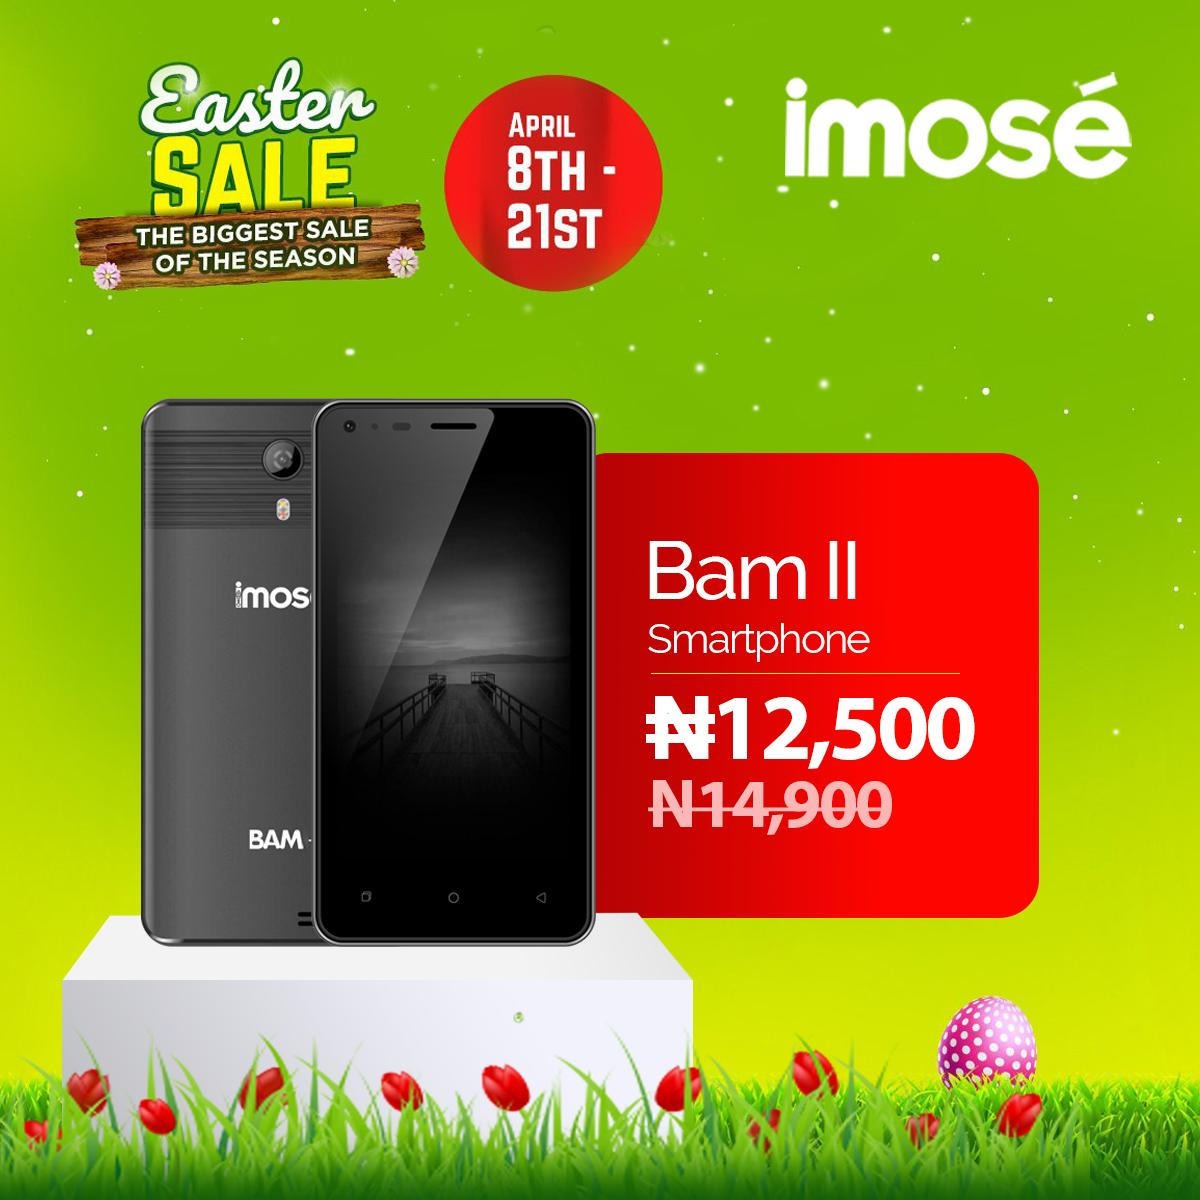 RT @imosenig: BAM-II sef follow for the promo https://t.co/yzwq71sWgz...